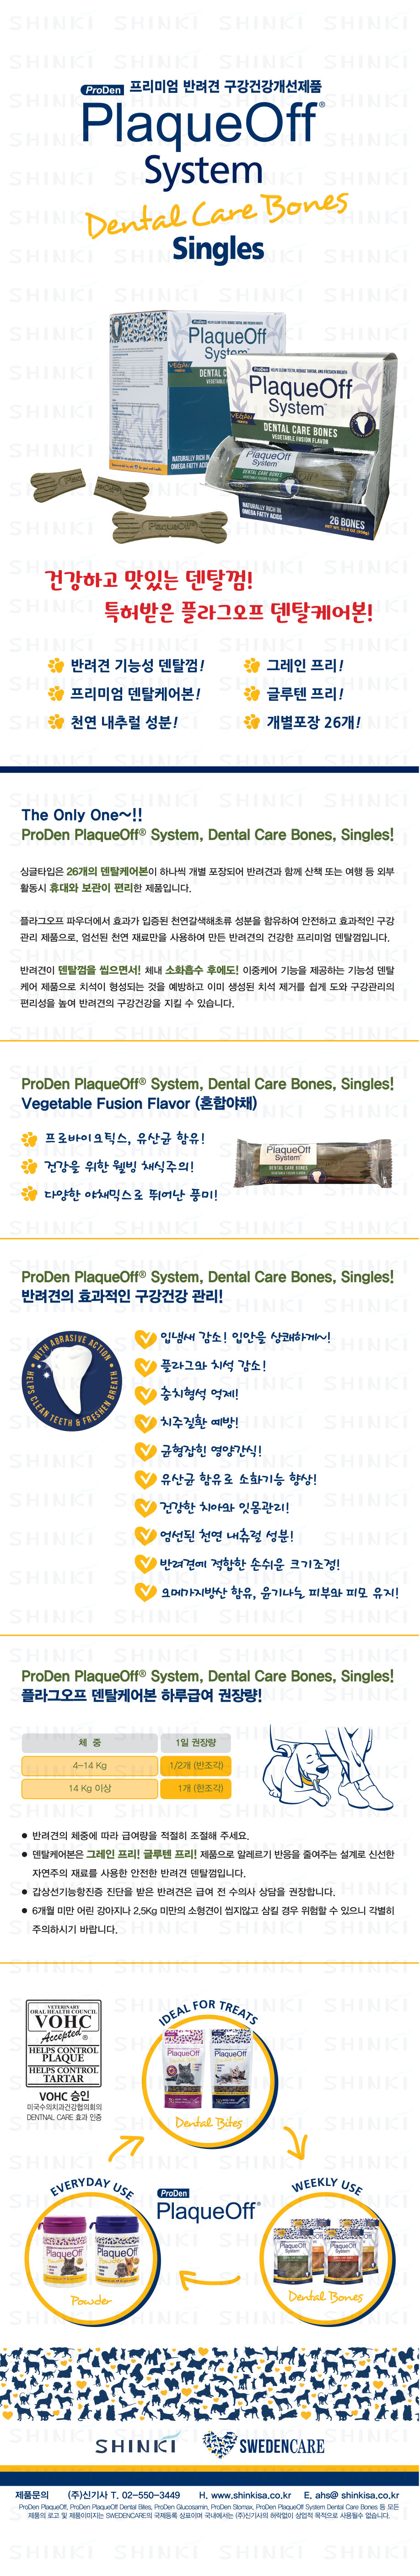 dental care bones singles.jpg